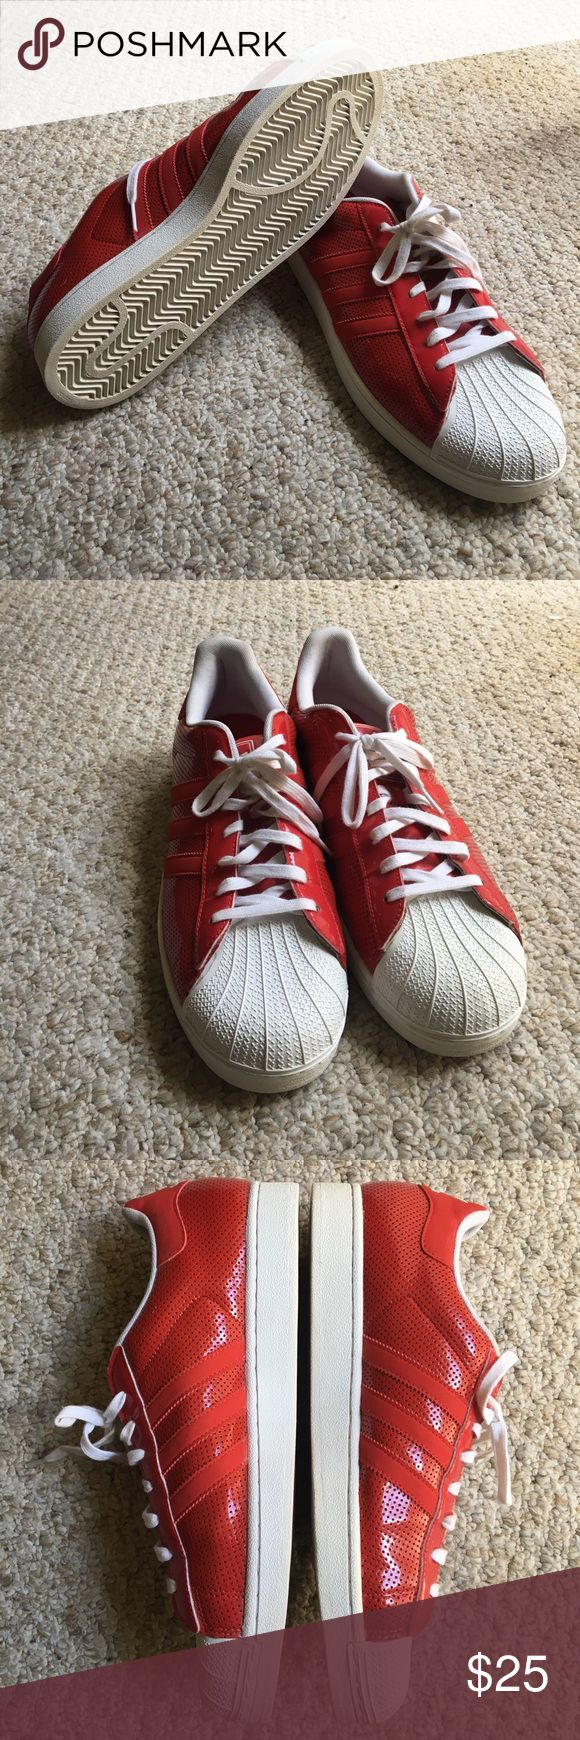 Red Adidas shell top sneakers Red and white shell topped Adidas sneakers. Men's size 12. Moderately worn and in good condition (8/10). Won't come in original boxing. adidas Shoes Sneakers